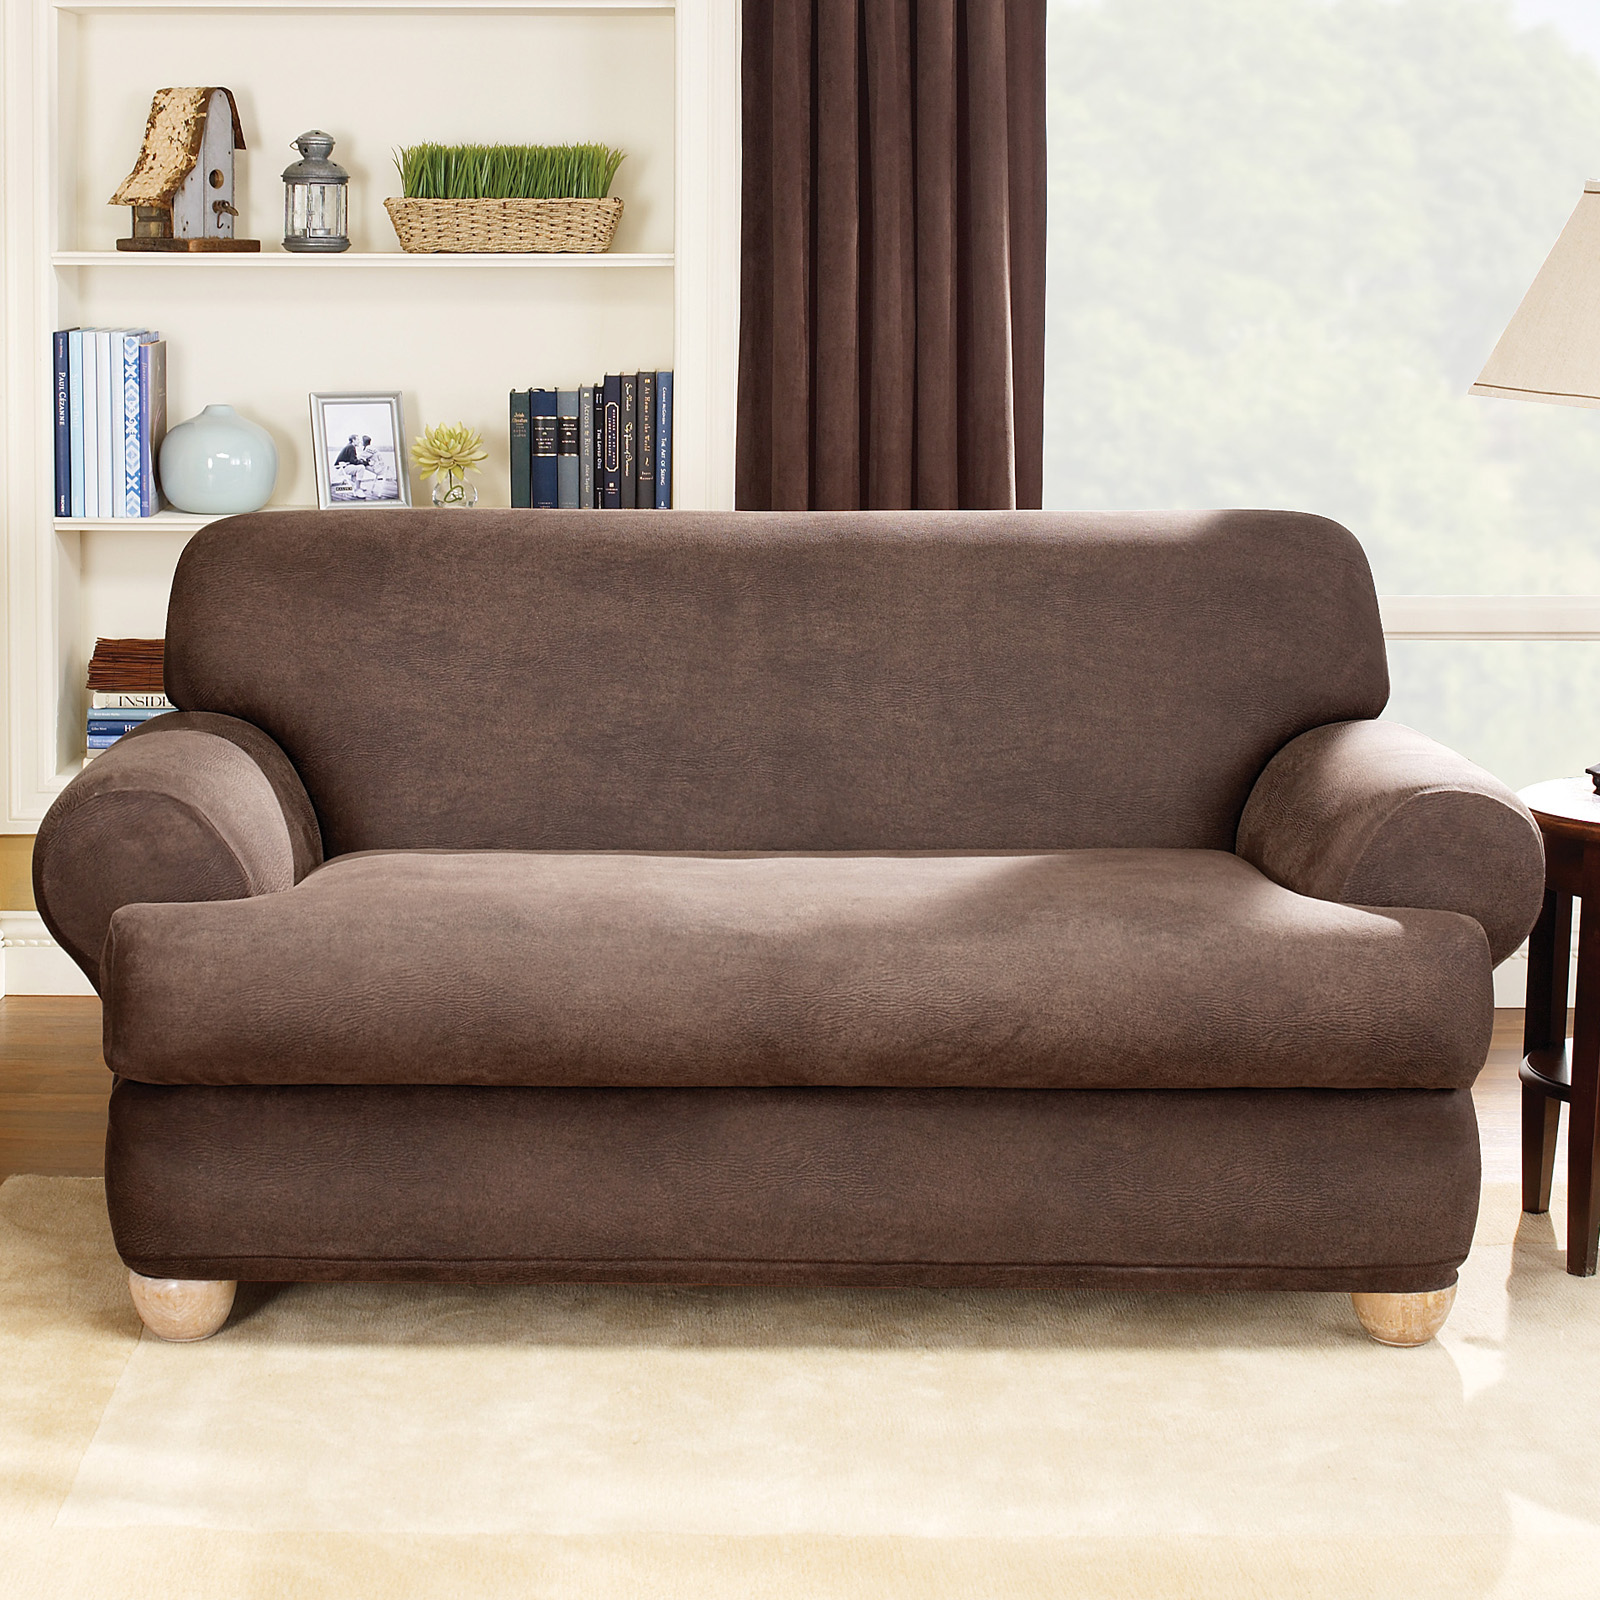 Sure fit stretch leather t cushion two piece sofa for Sofa slipcovers for leather furniture